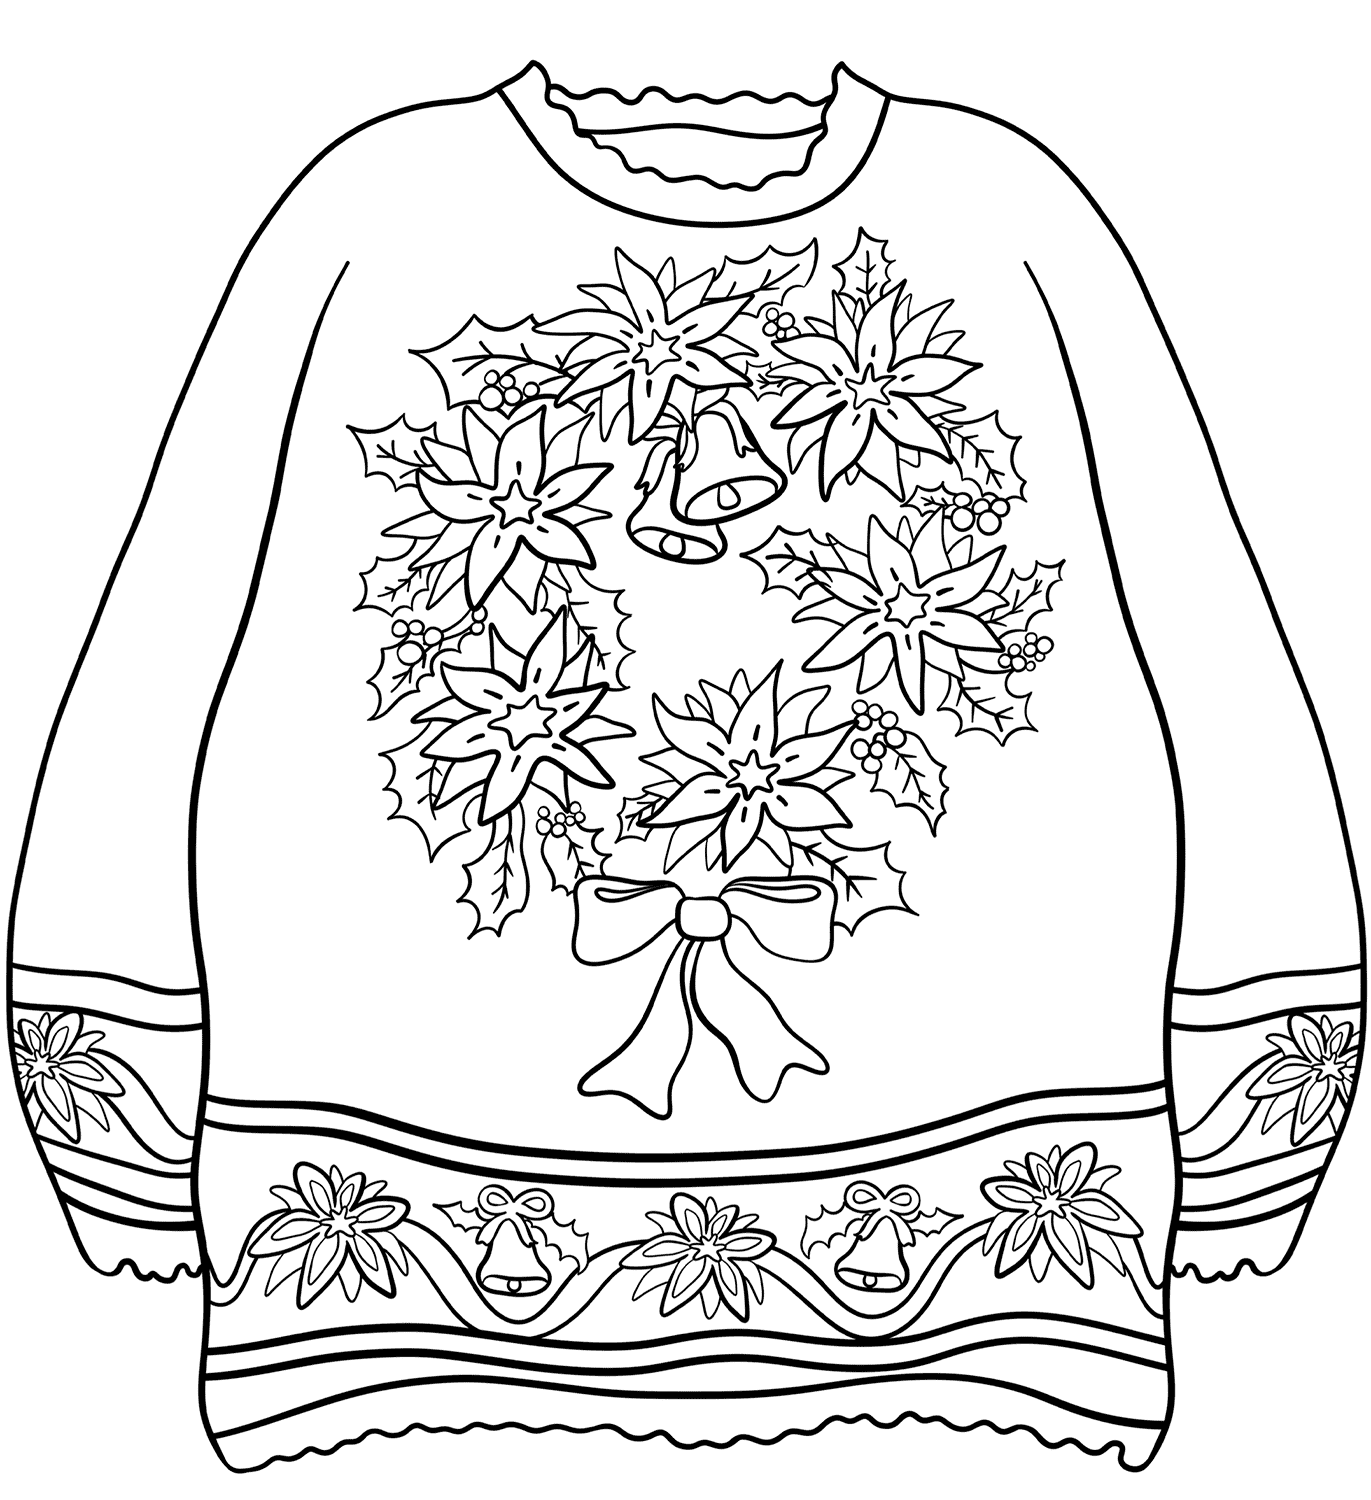 Sweater with Christmas Wreath Coloring Page